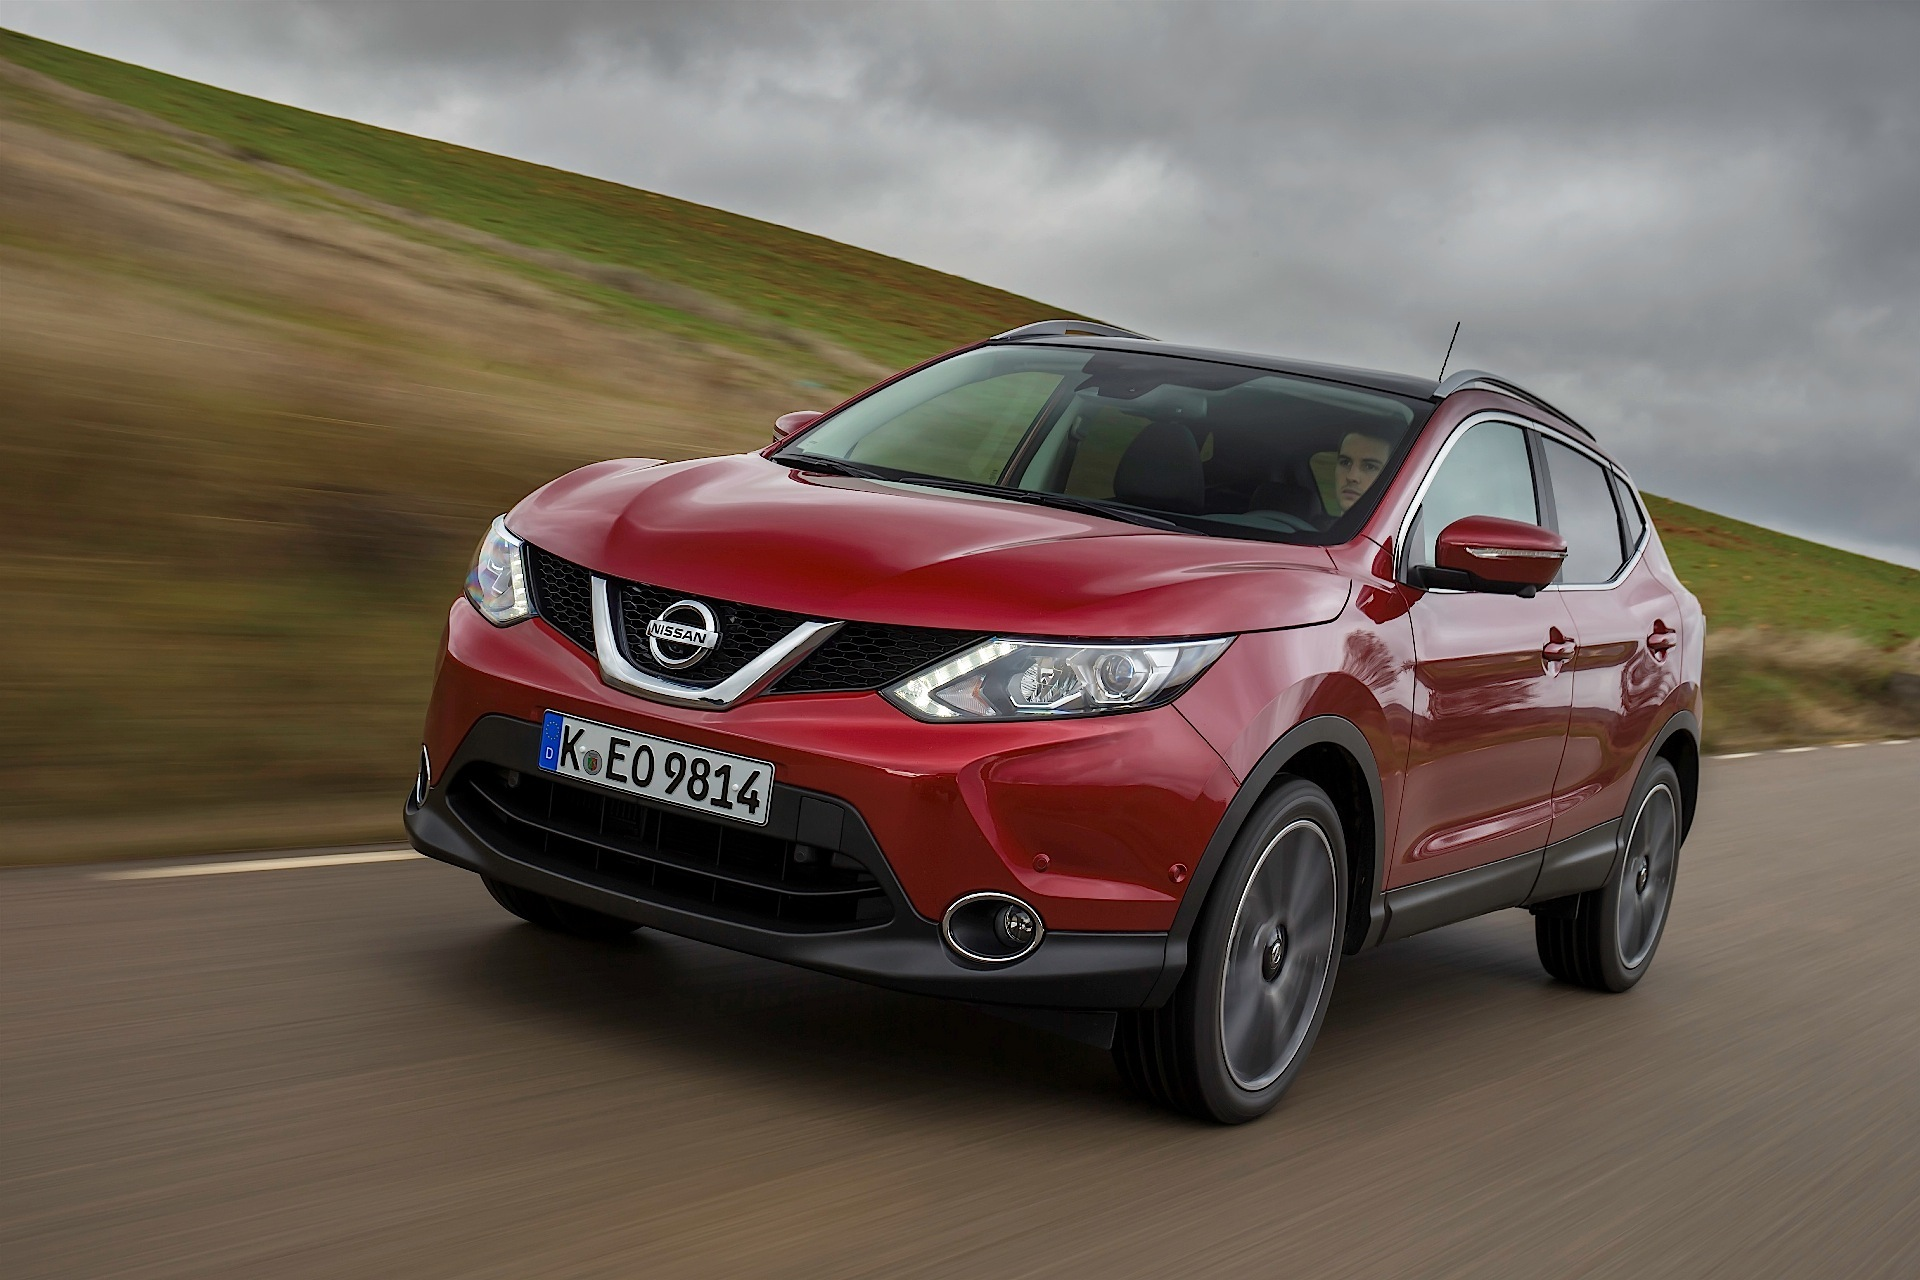 nissan qashqai specs 2013 2014 2015 2016 2017 2018 autoevolution. Black Bedroom Furniture Sets. Home Design Ideas